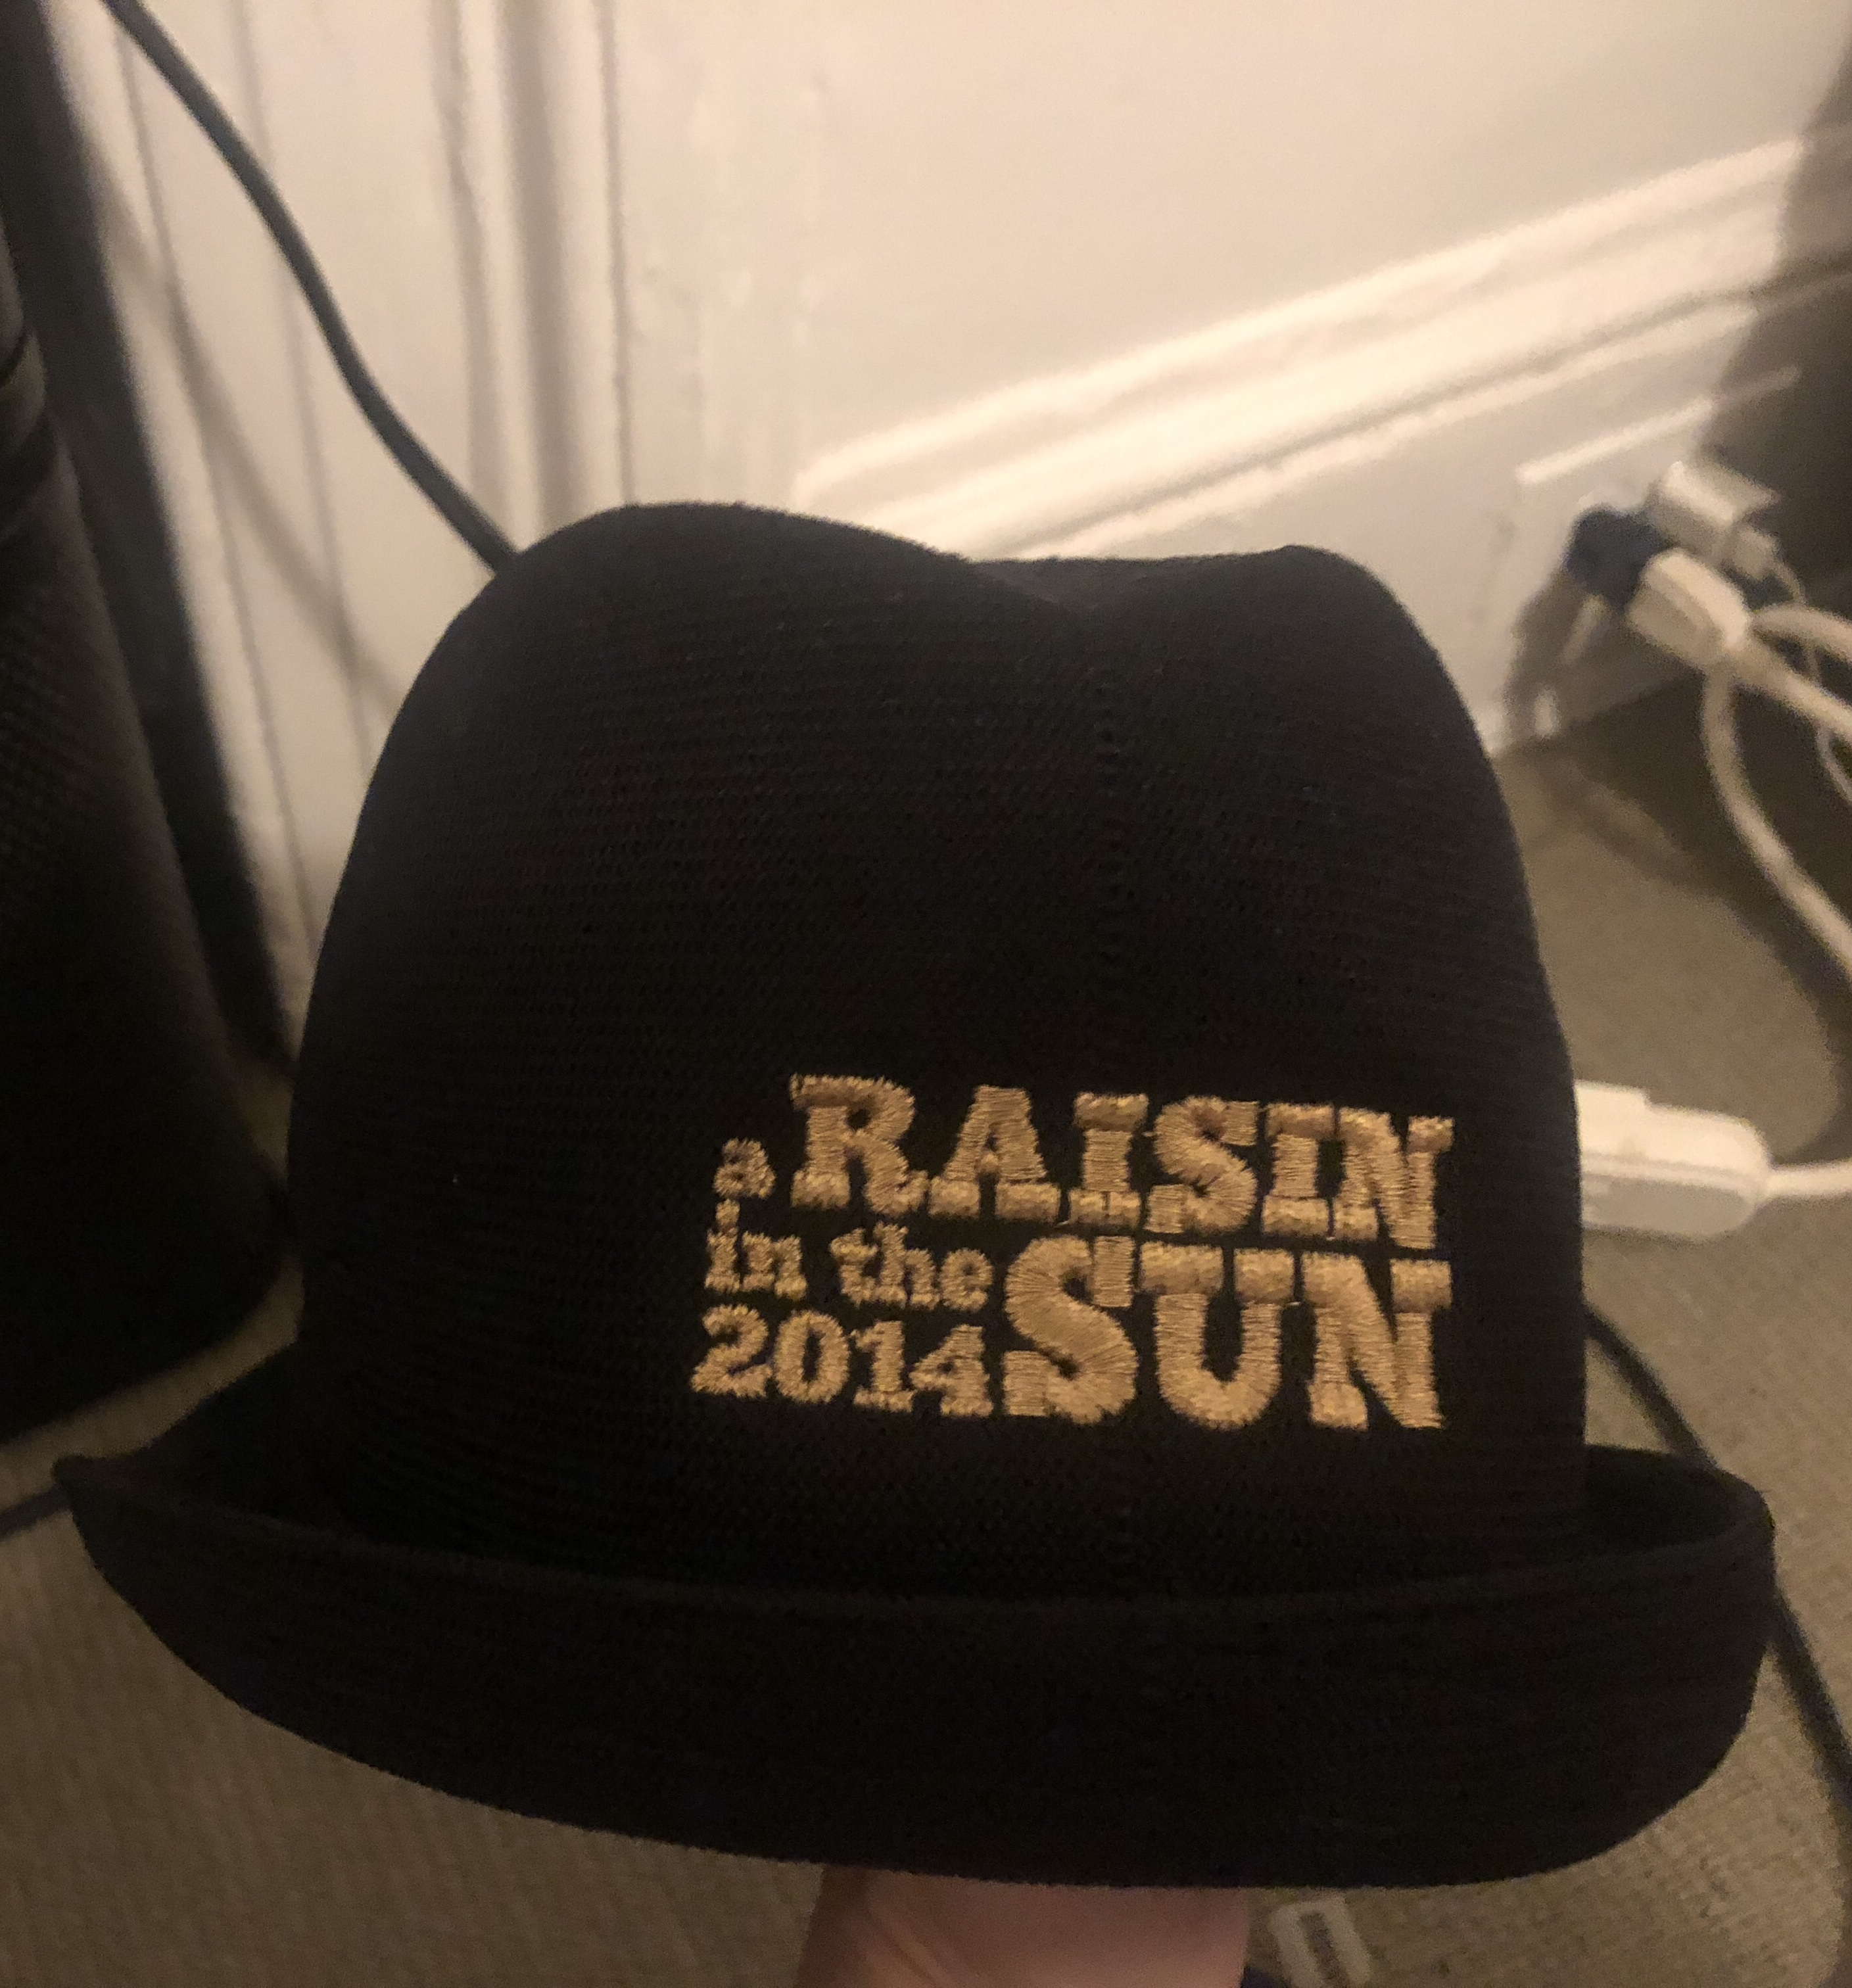 A Raisin in the Sun revival opening night gift